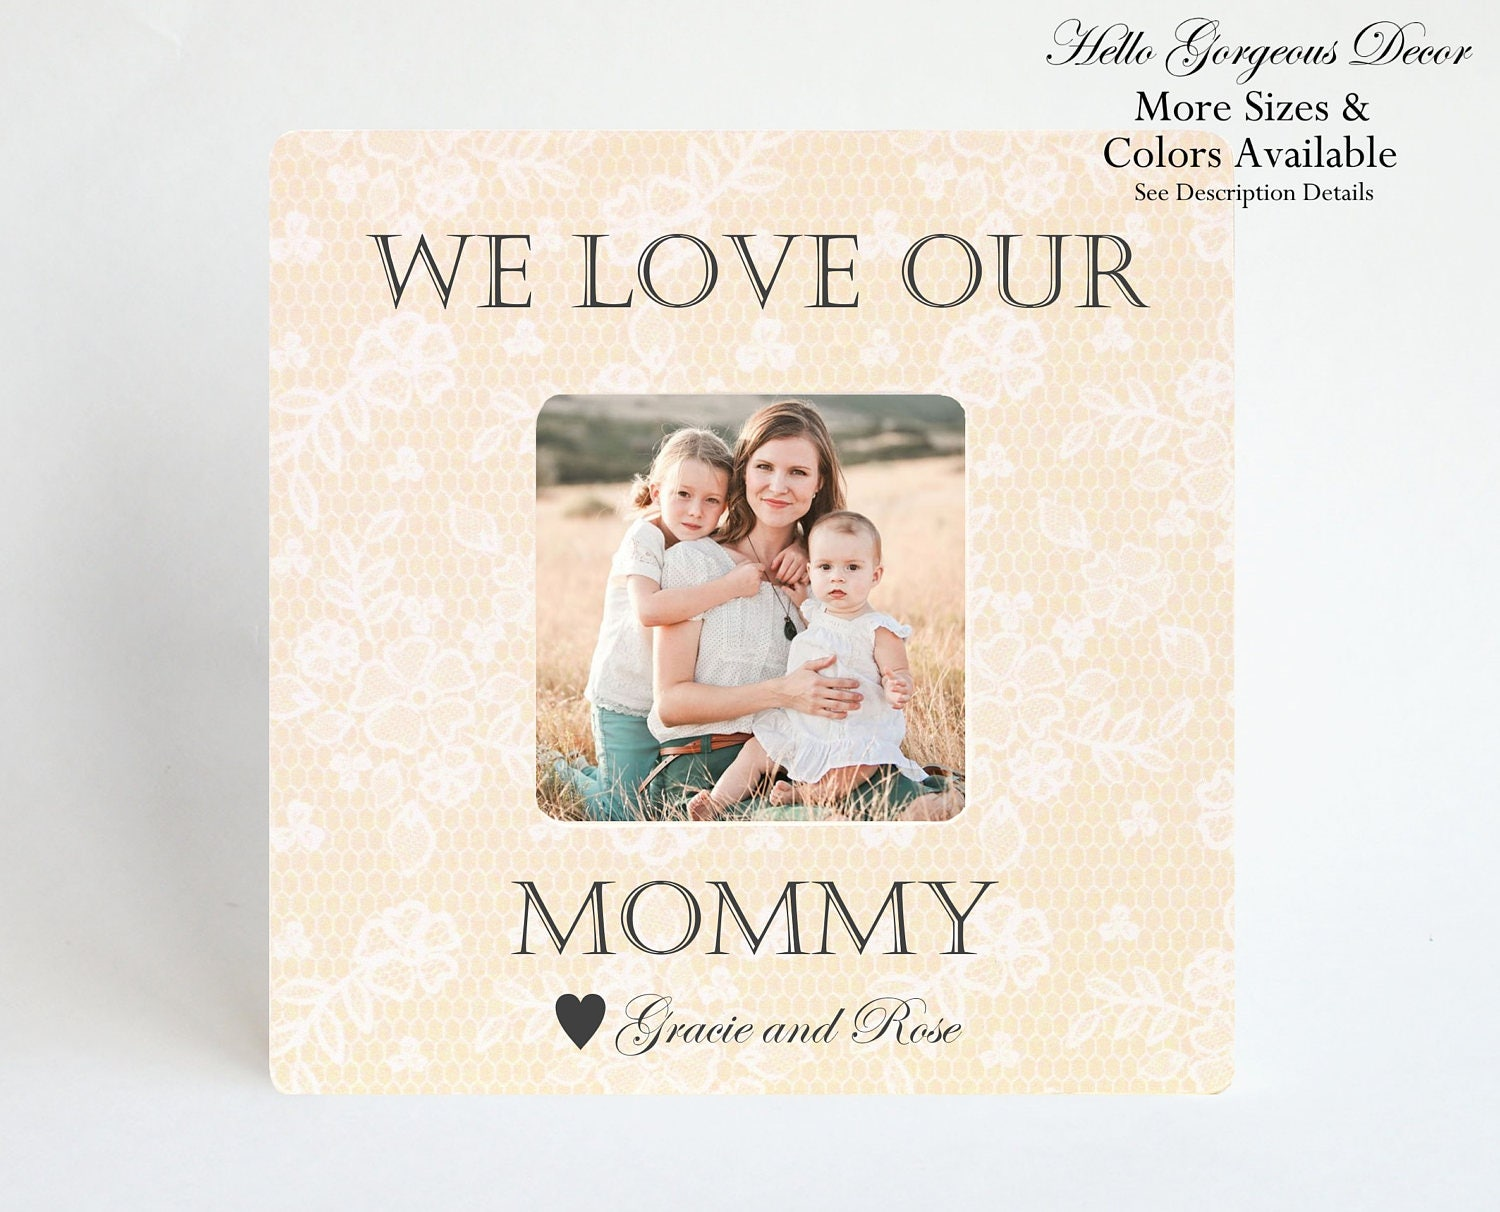 Mom Mother Picture Frame Gift From Kids Children Personalized Photo Birthday Ideas Expecting New Of Twins